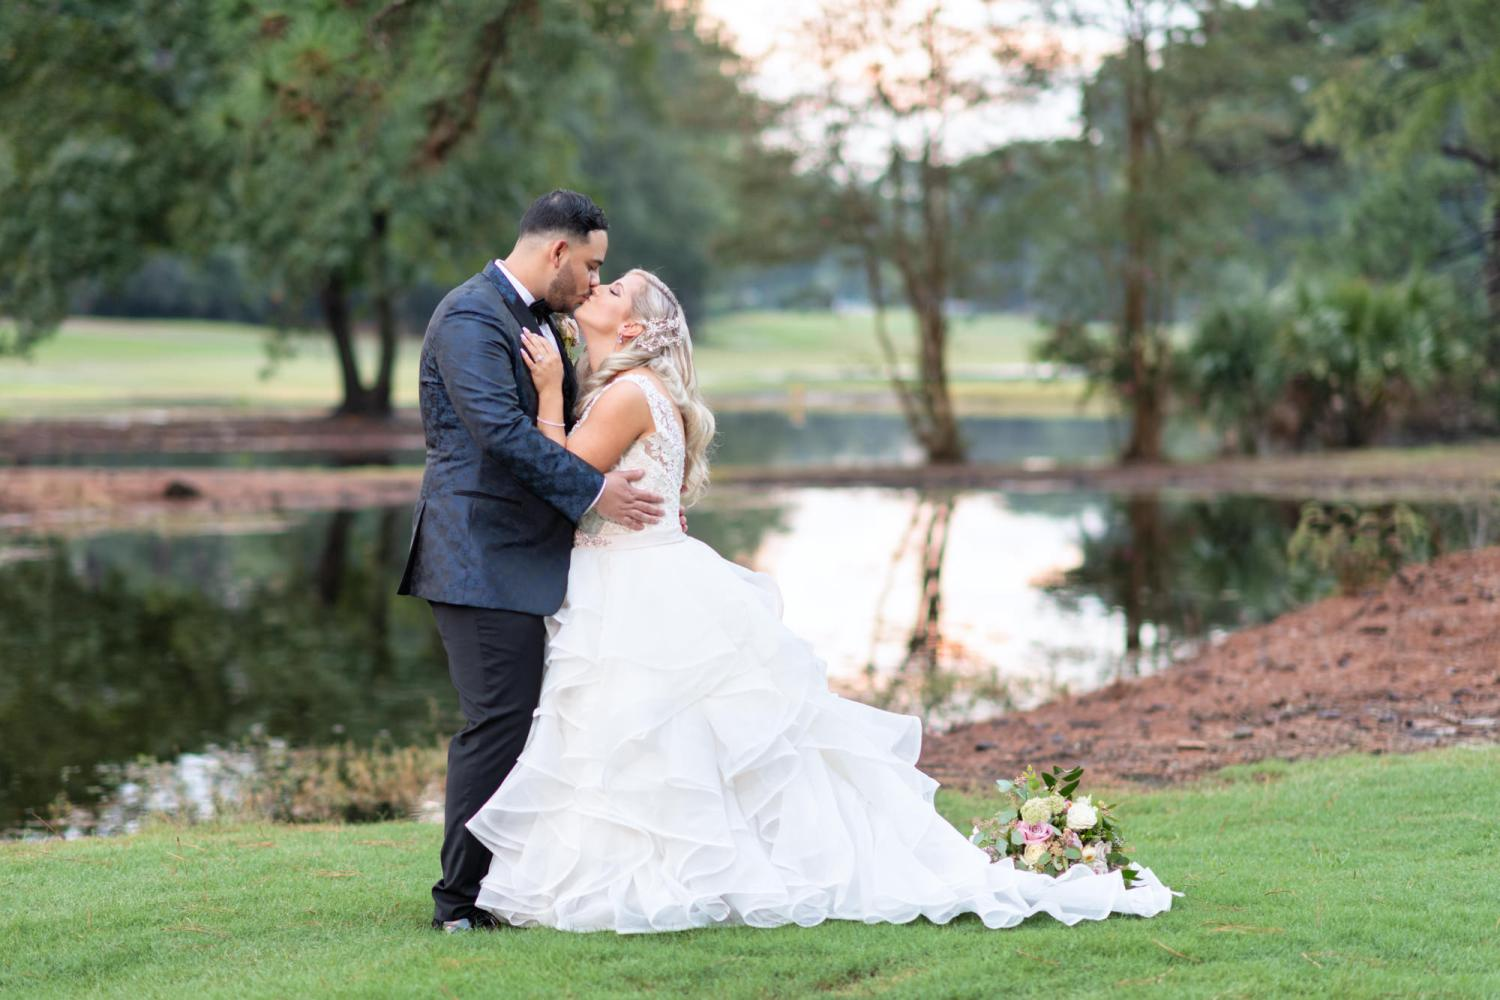 Kiss in front of the golf course lake - Litchfield Country Club